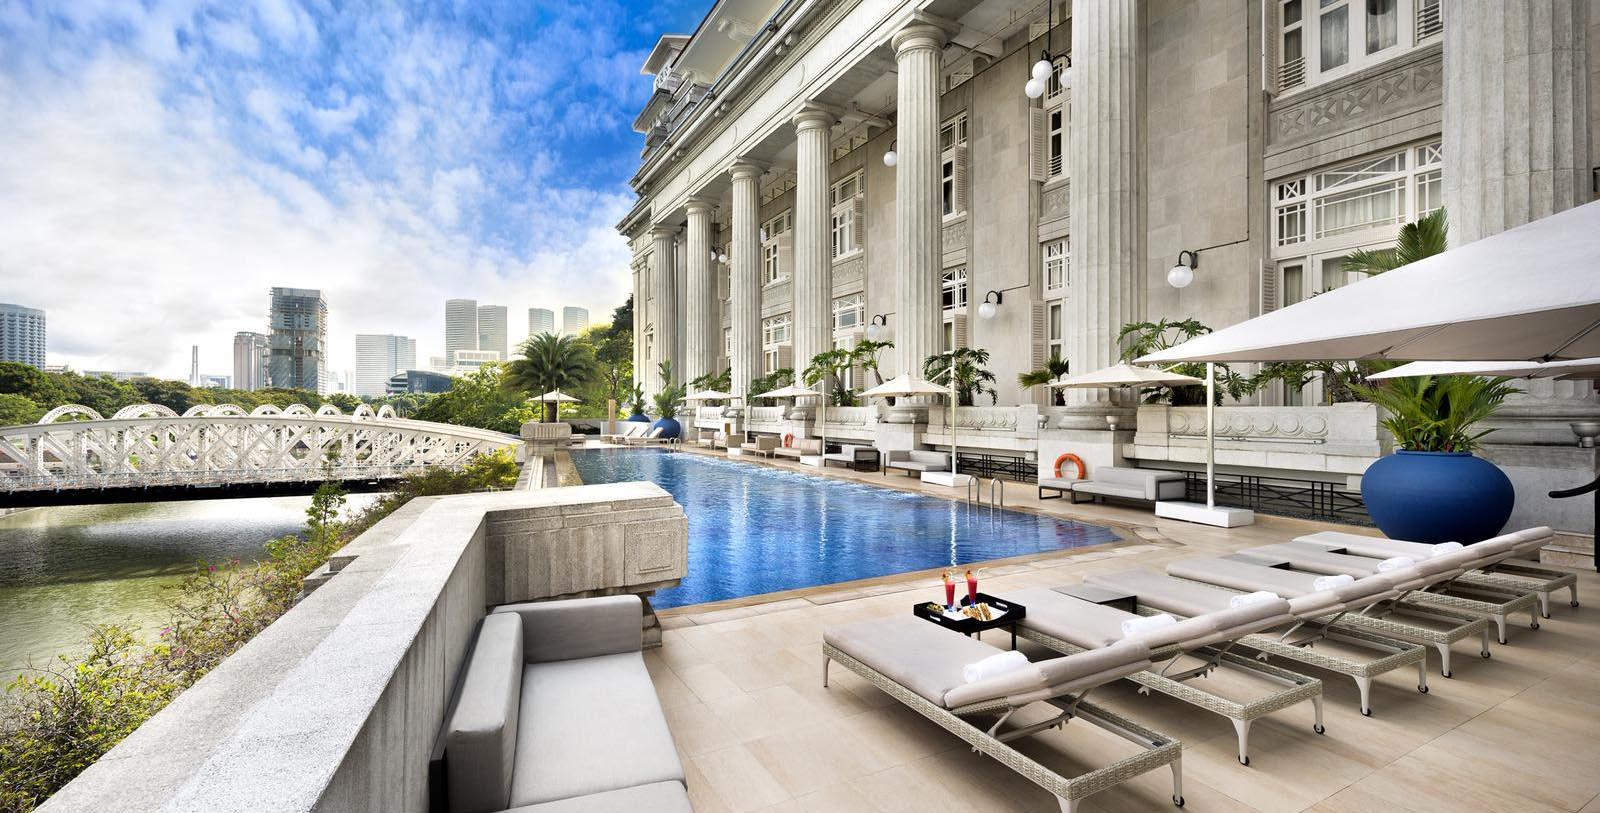 Image of Pool Terrace at The Fullerton Hotel Singapore, 1924, Member of Historic Hotels Worldwide, in Singapore, Explore